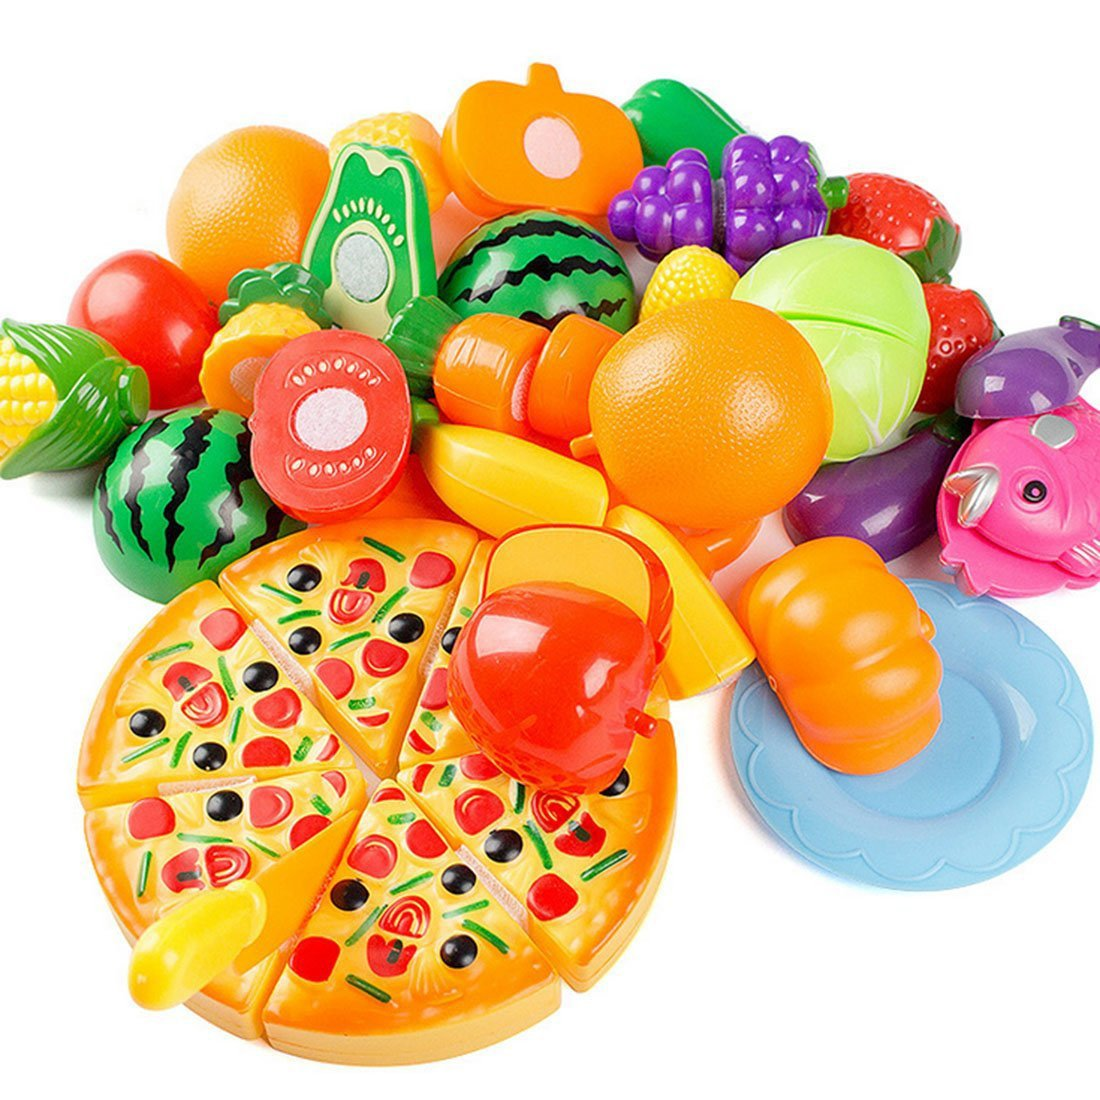 Plastic Toy Food : Zinkoda pcs plastic play food fruit vegetable kitchen